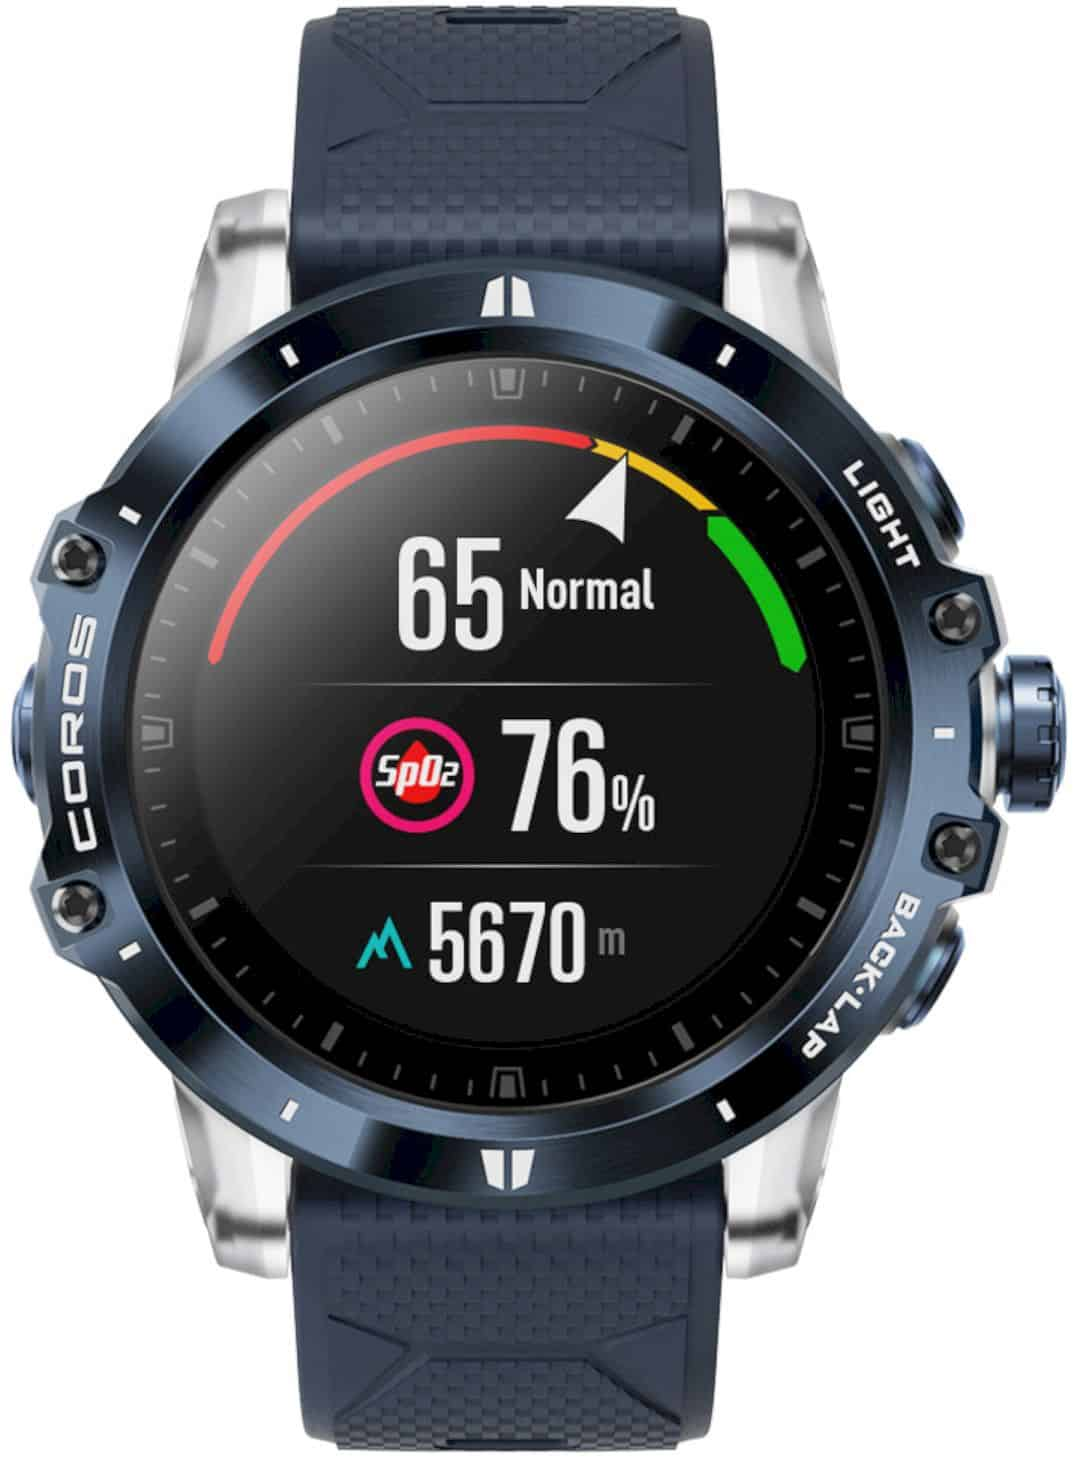 VERTIX GPS Adventure Watch 11